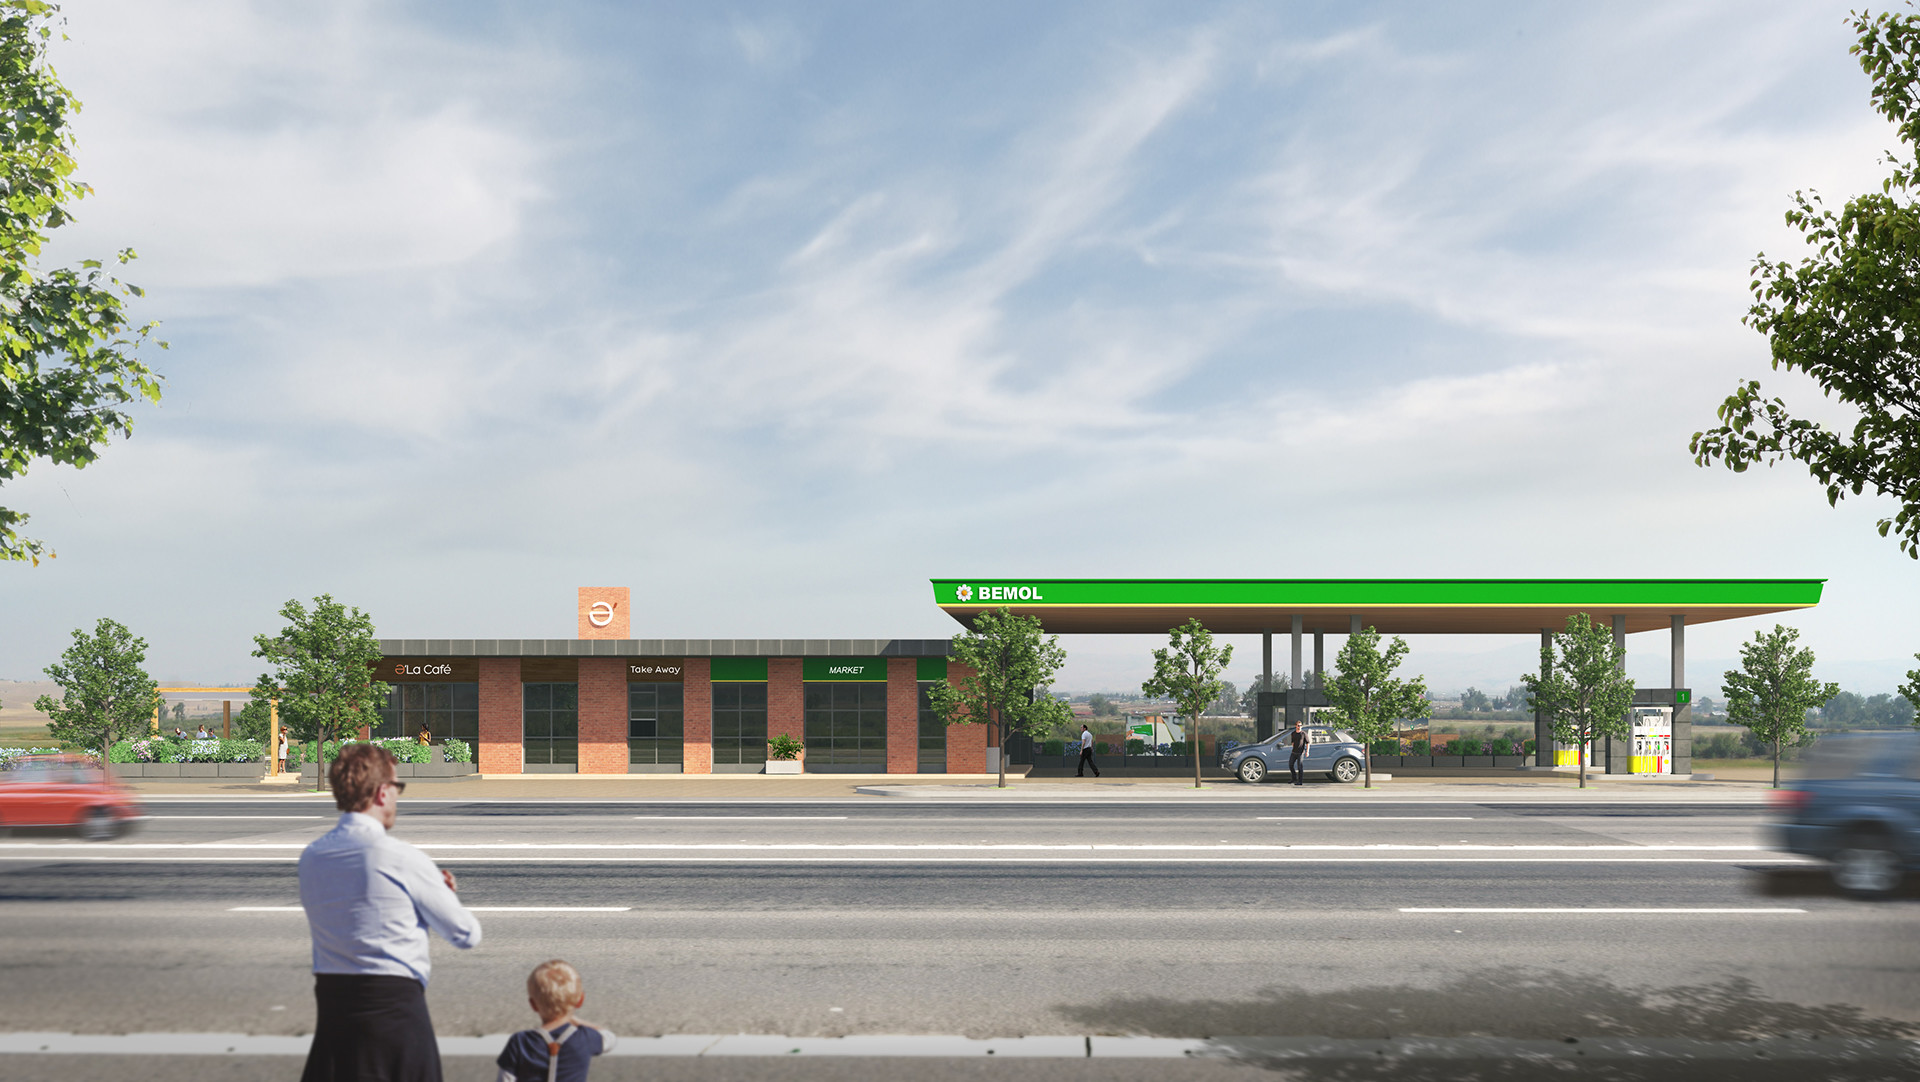 Wisp-Architects-Petrol-Station-Renasterii-1-1920x12801-1920x1157